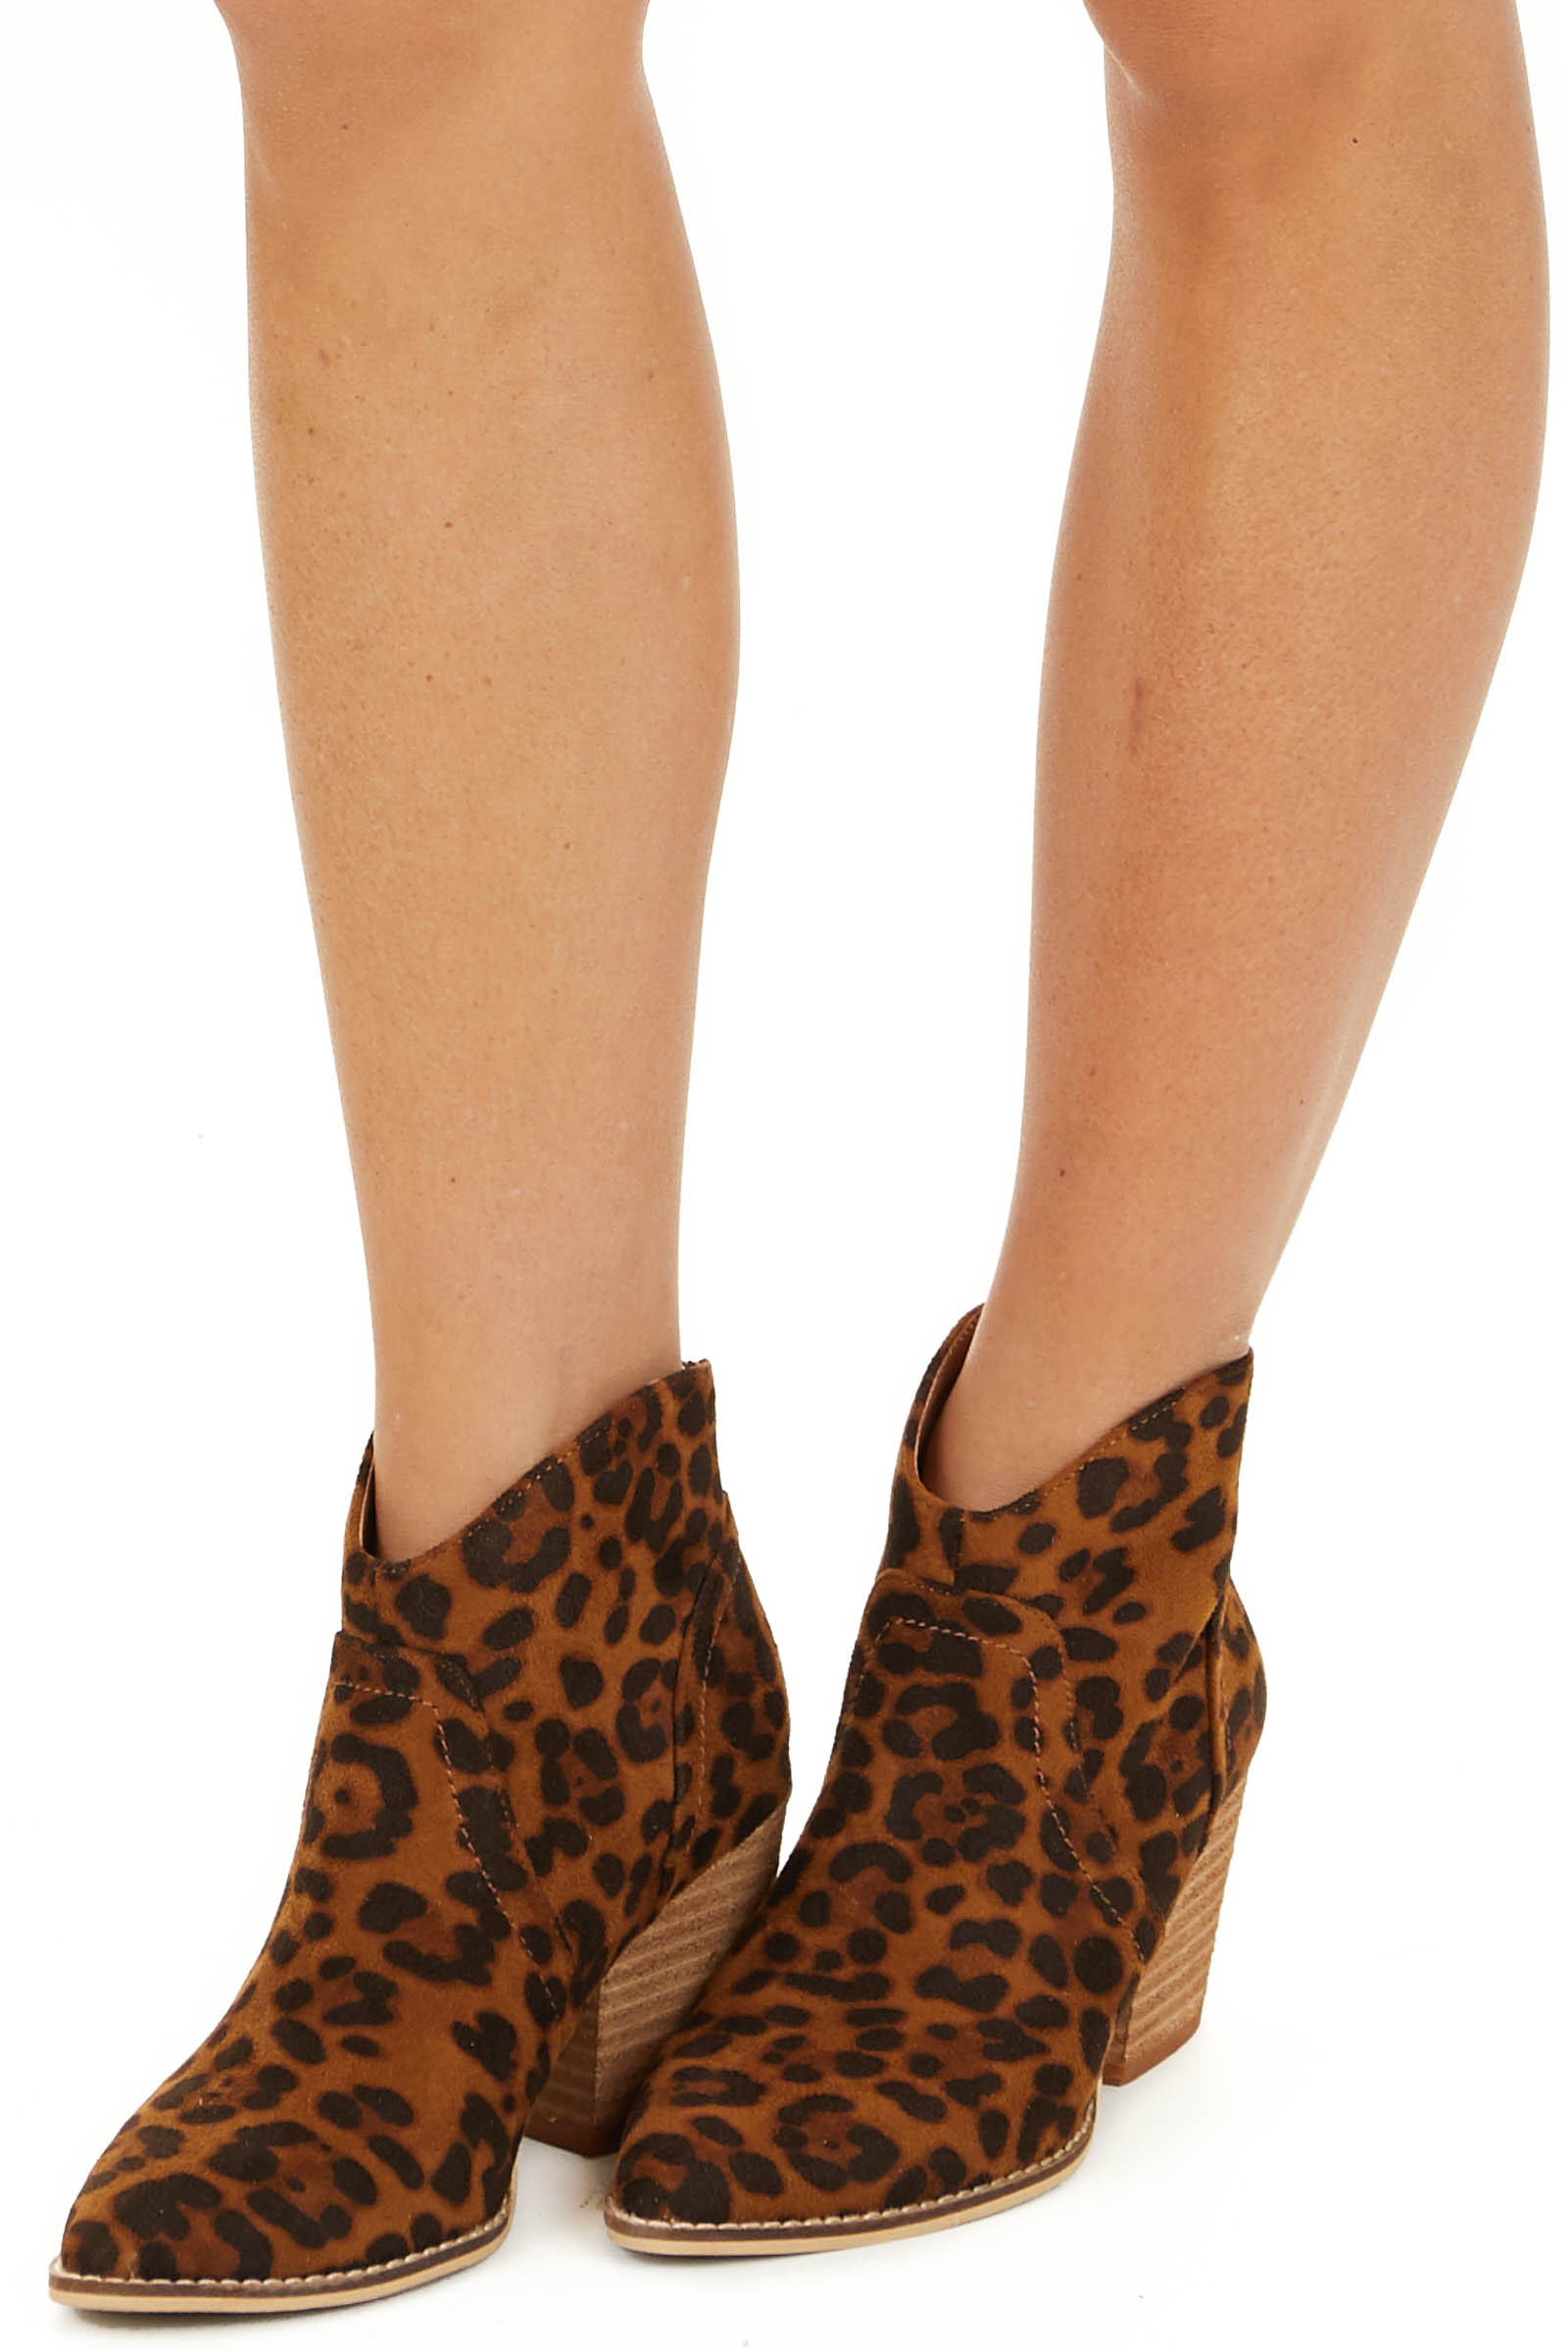 Cognac Leopard Print Faux Suede Pointed Toe Heeled Booties side view